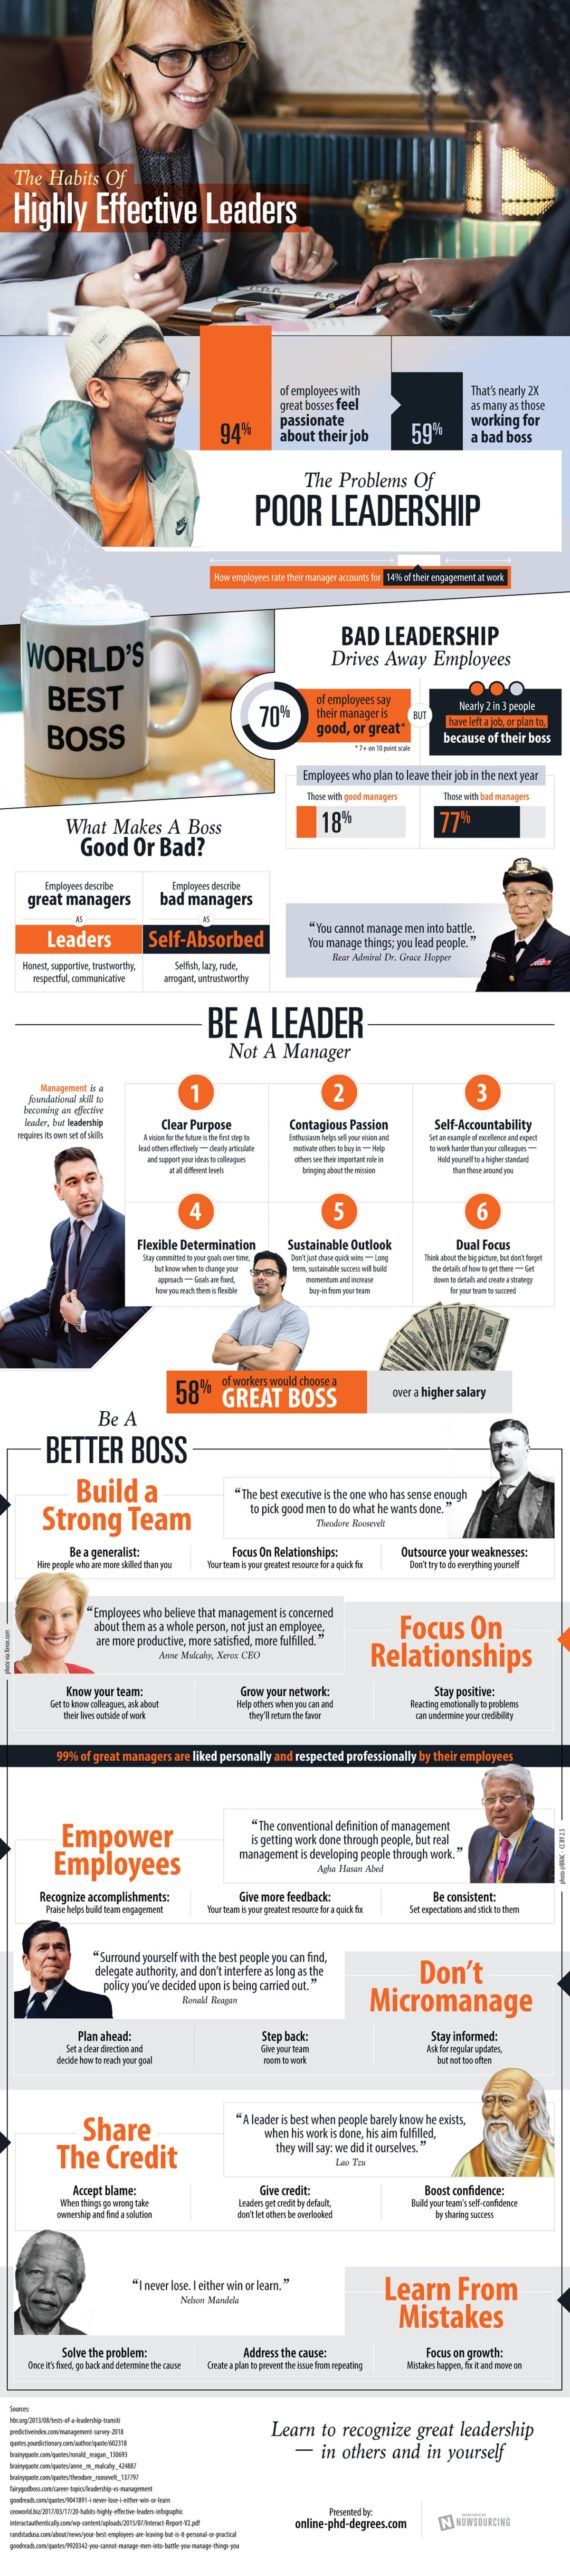 The Habits of Highly Effective Leaders Image